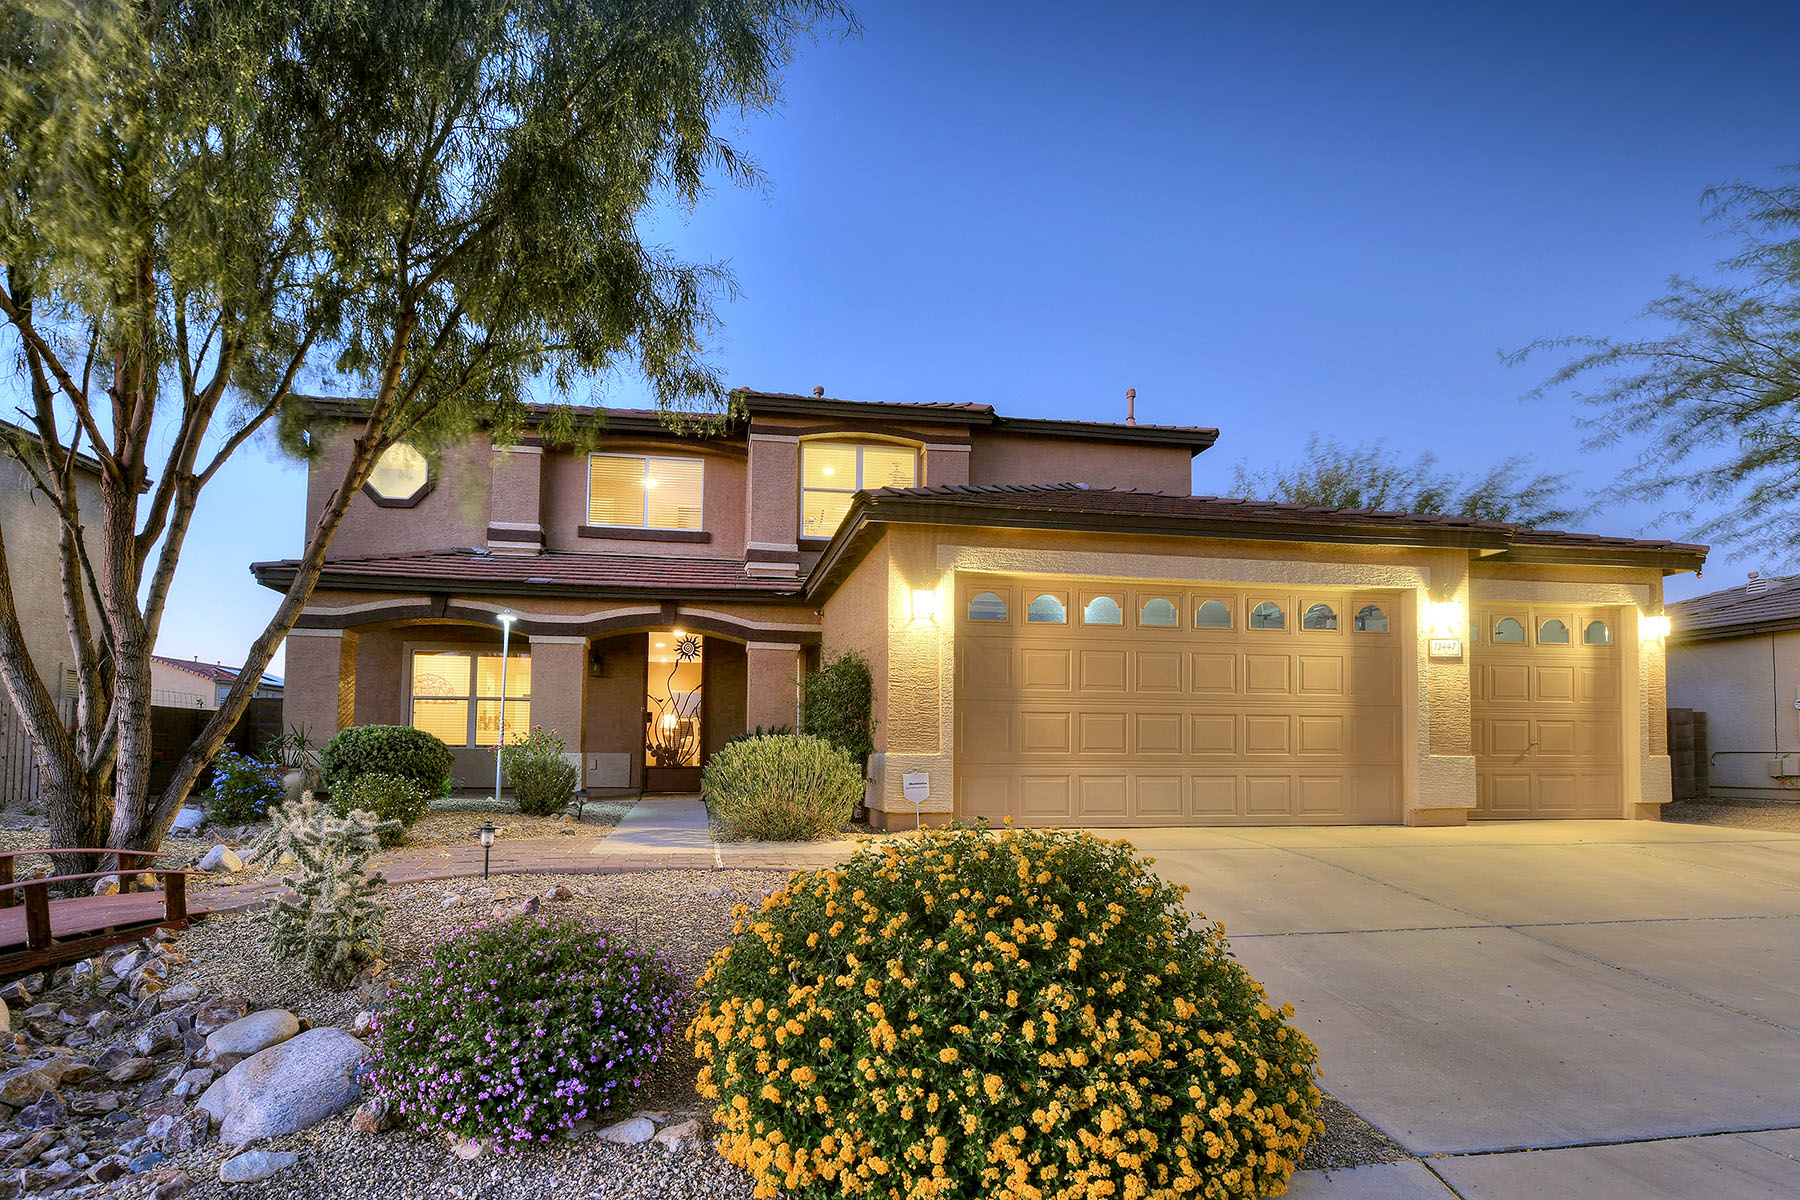 Single Family Homes for Sale at Beautiful Curb Appeal 13447 E Hampden Green Way Vail, Arizona 85641 United States